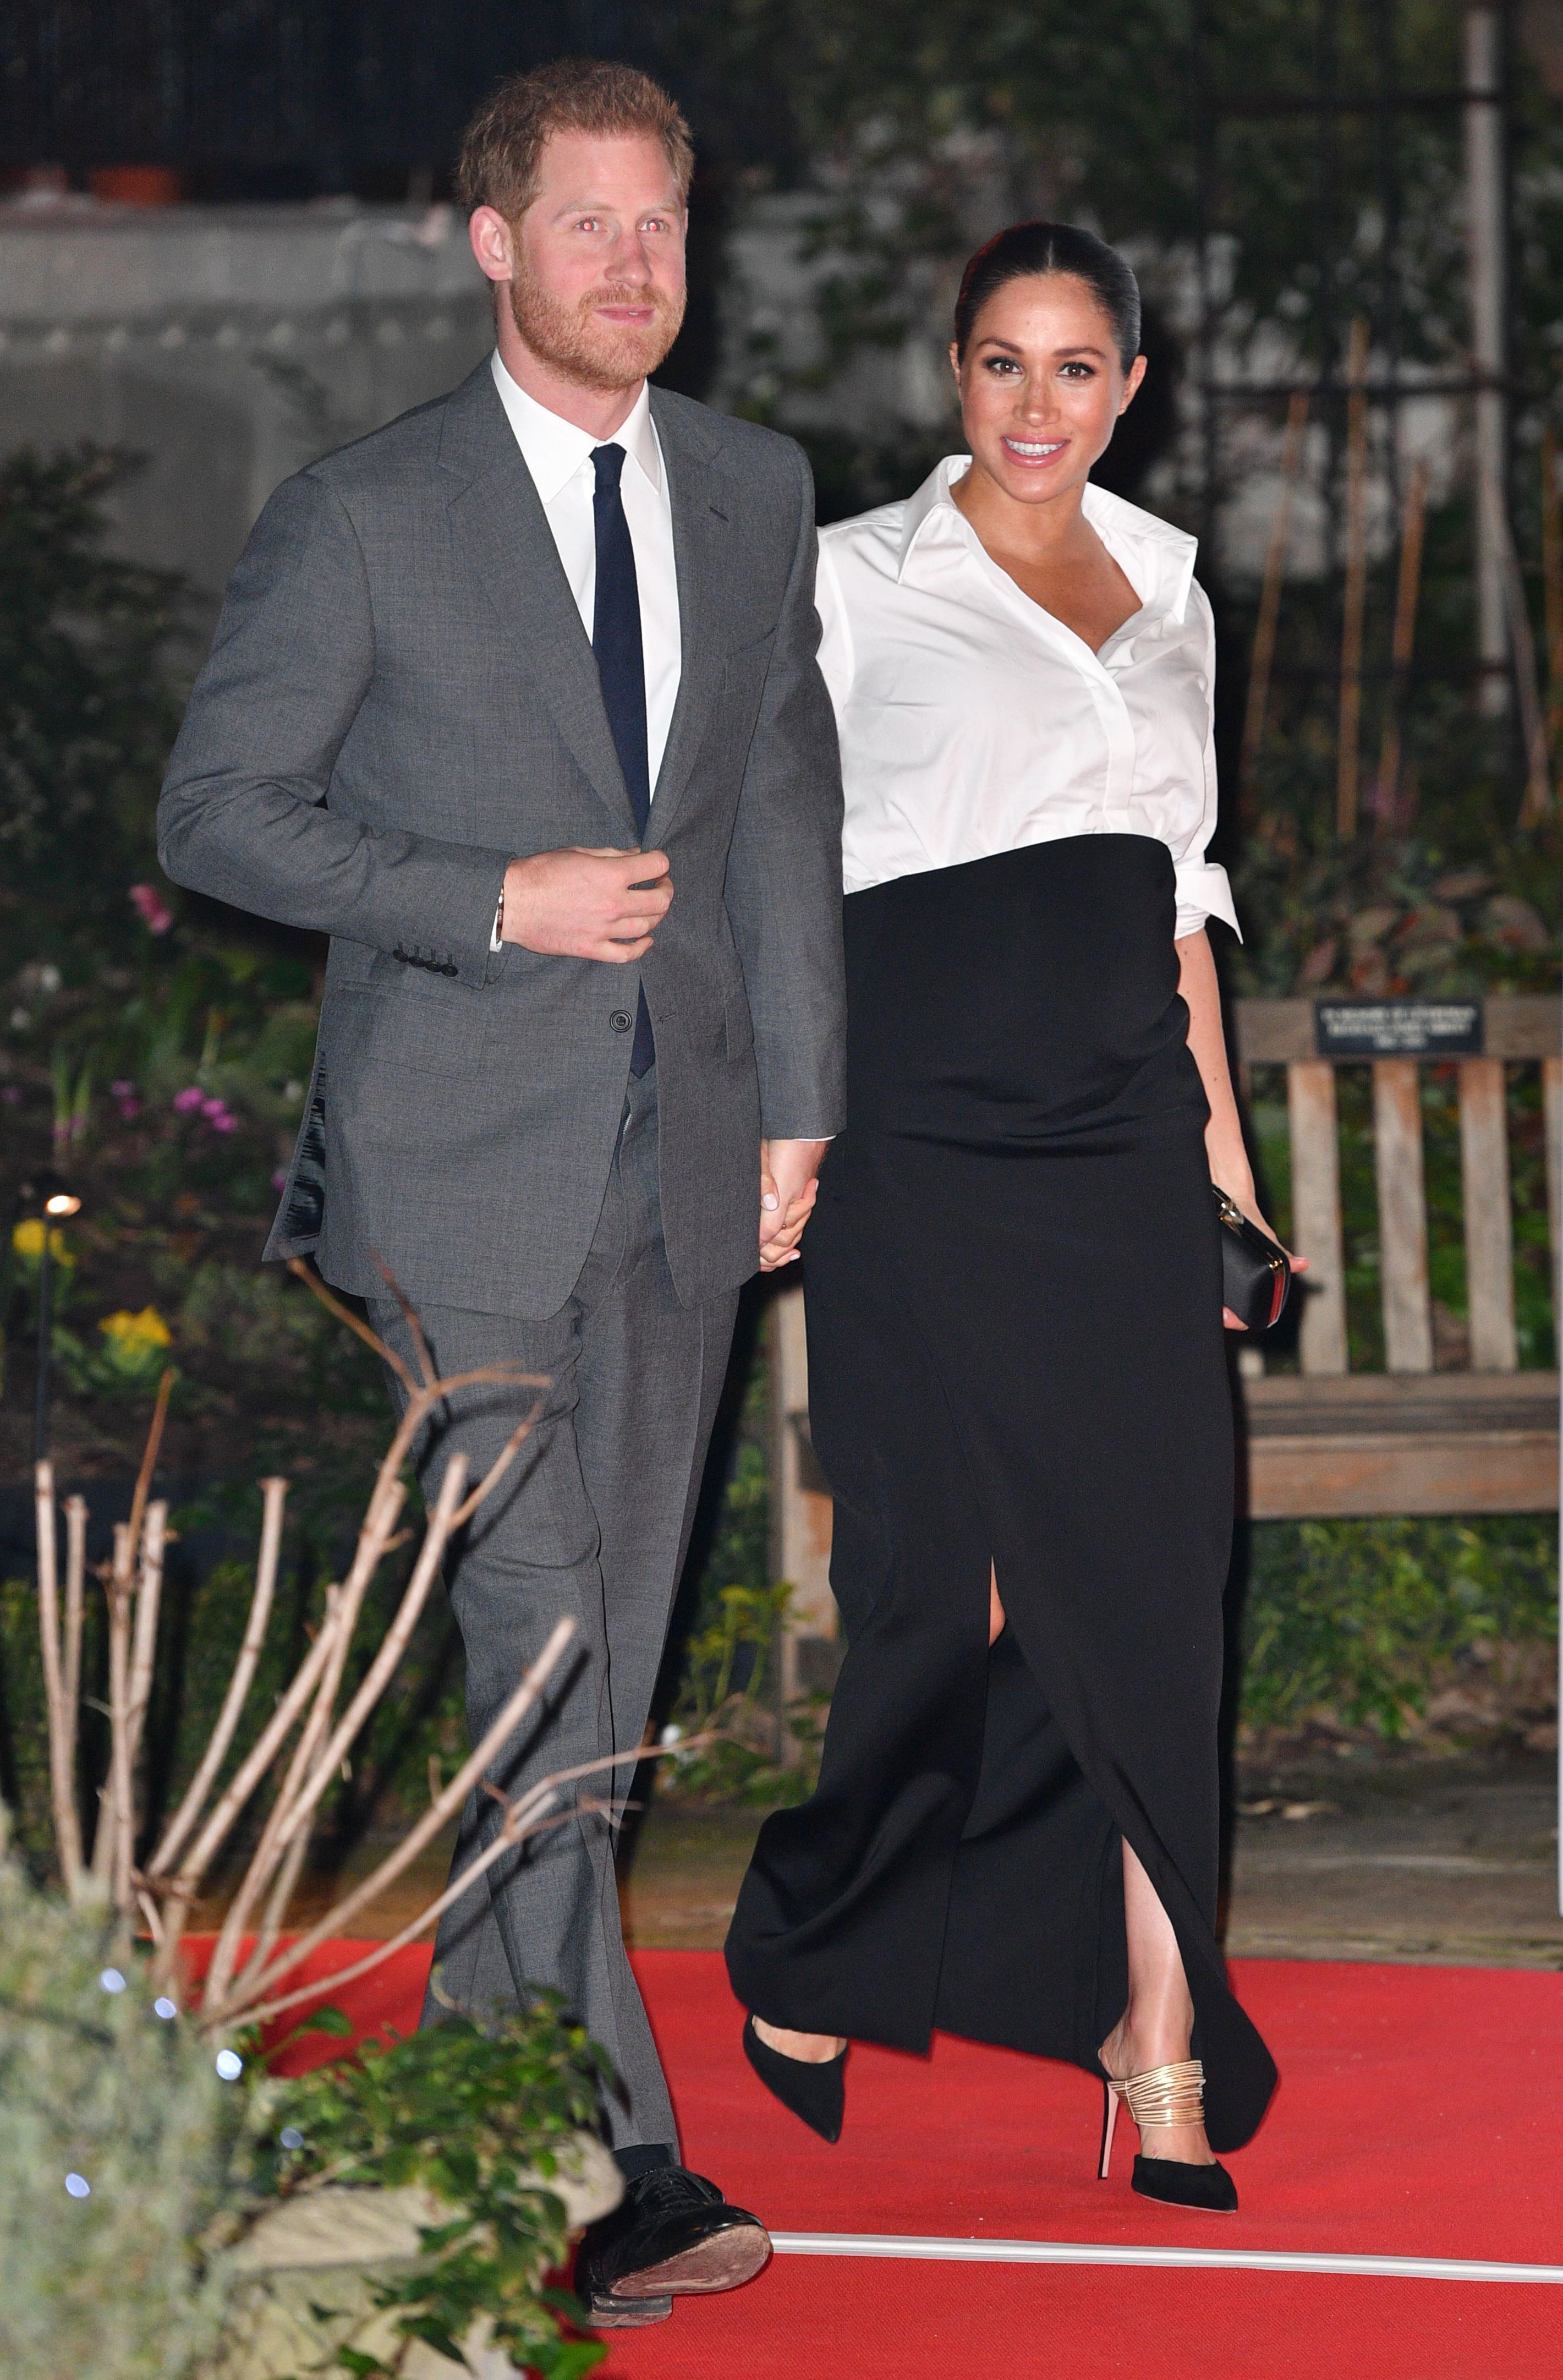 Prince Harry and Duchess Meghan arrive at the Endeavour Fund Awards in London on Feb. 7, 2019.